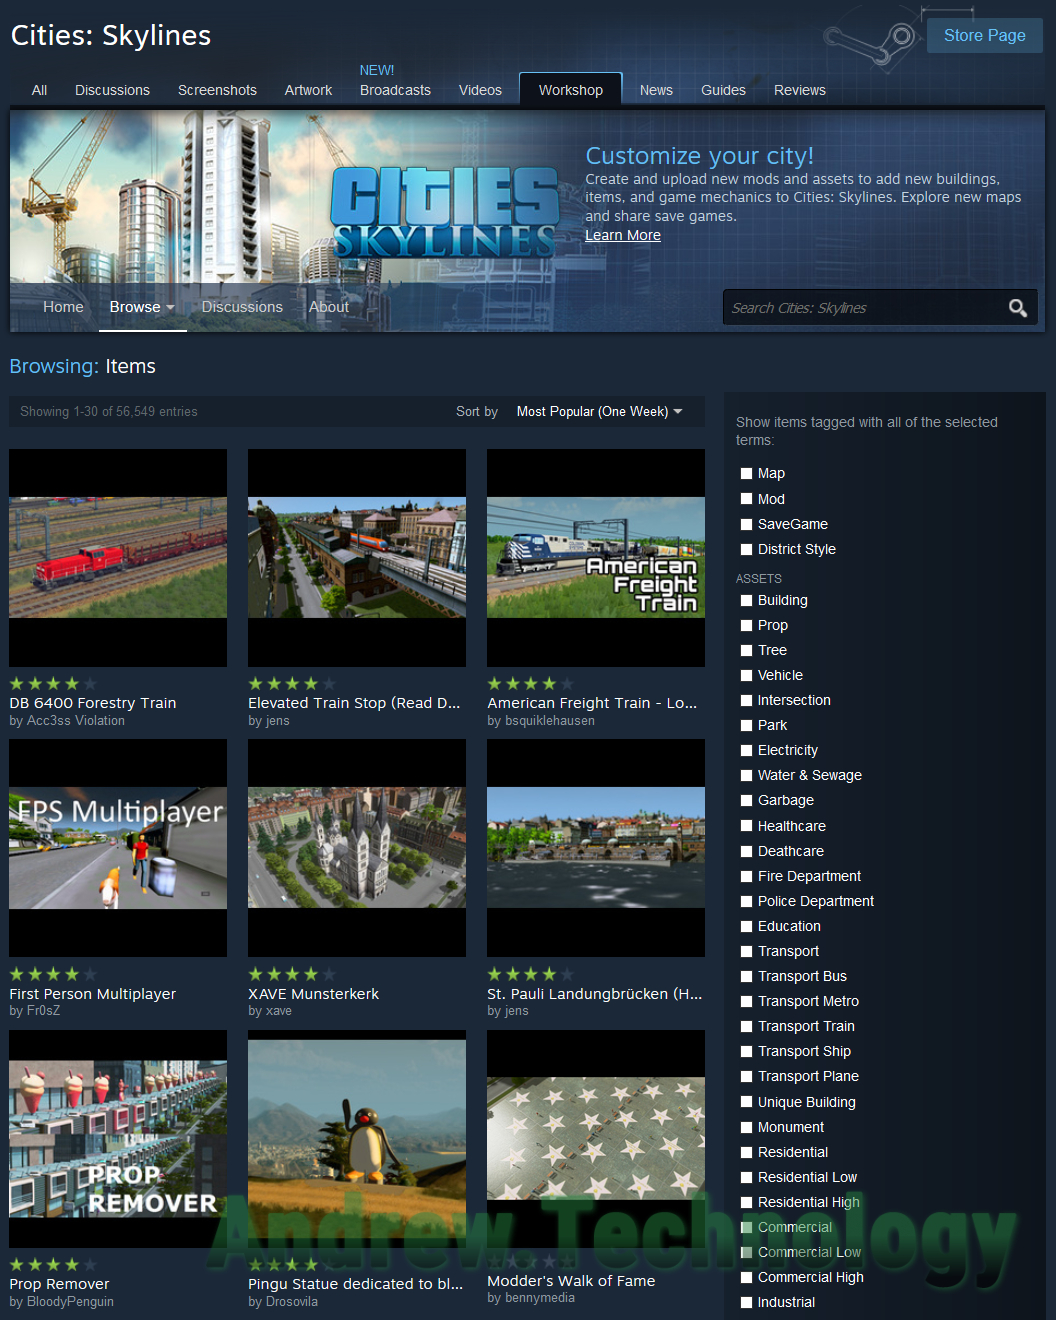 Cities:Skyline Steam Workshop mods, buildings, assets, vehicles, saved games